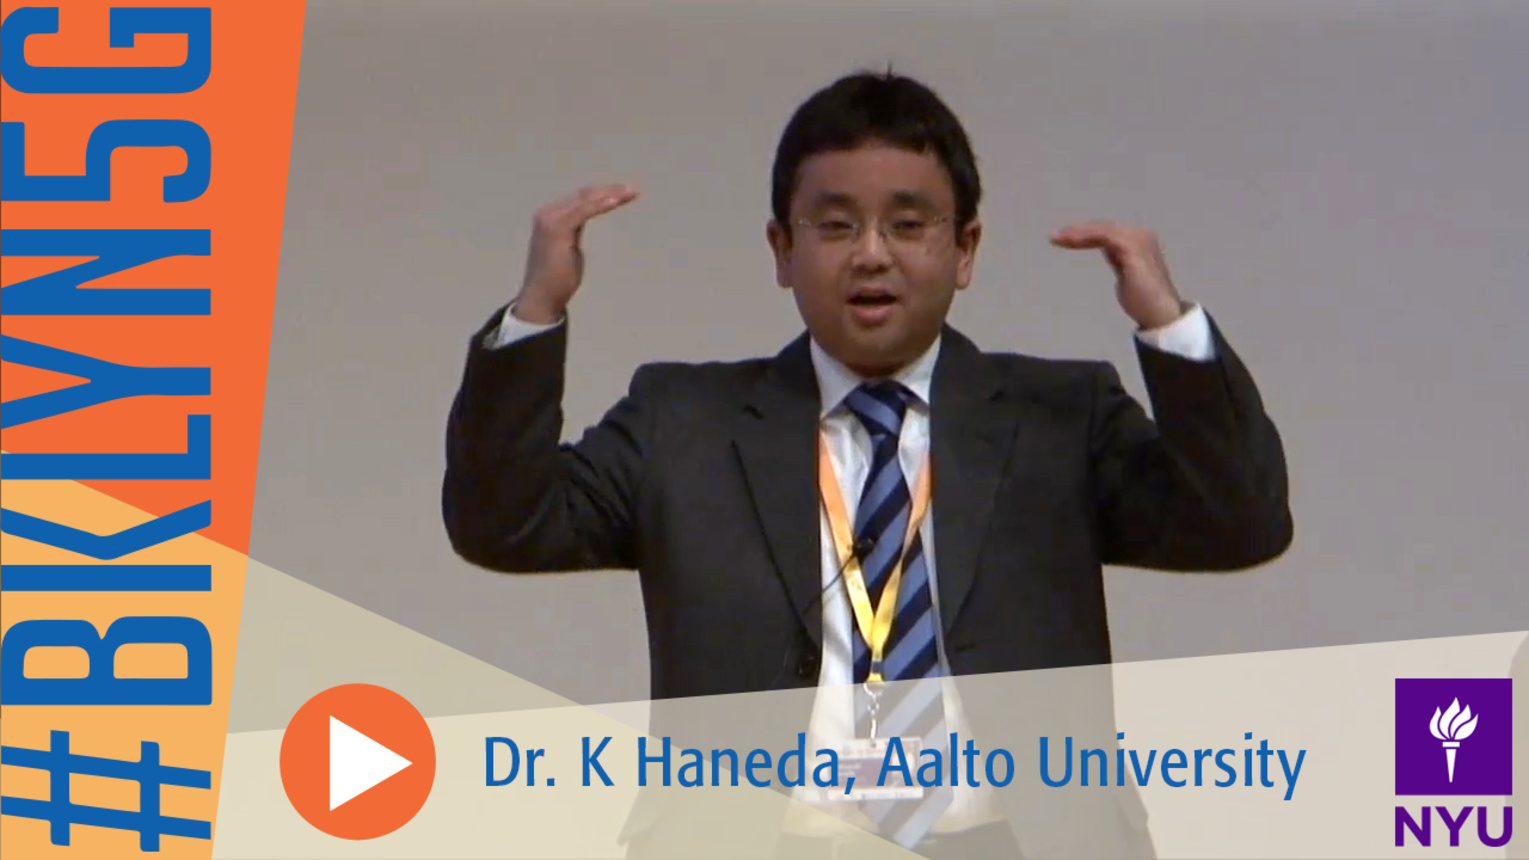 Brooklyn 5G Summit 2014: Modeling the Indoor Radio Propagation with Dr. K Haneda